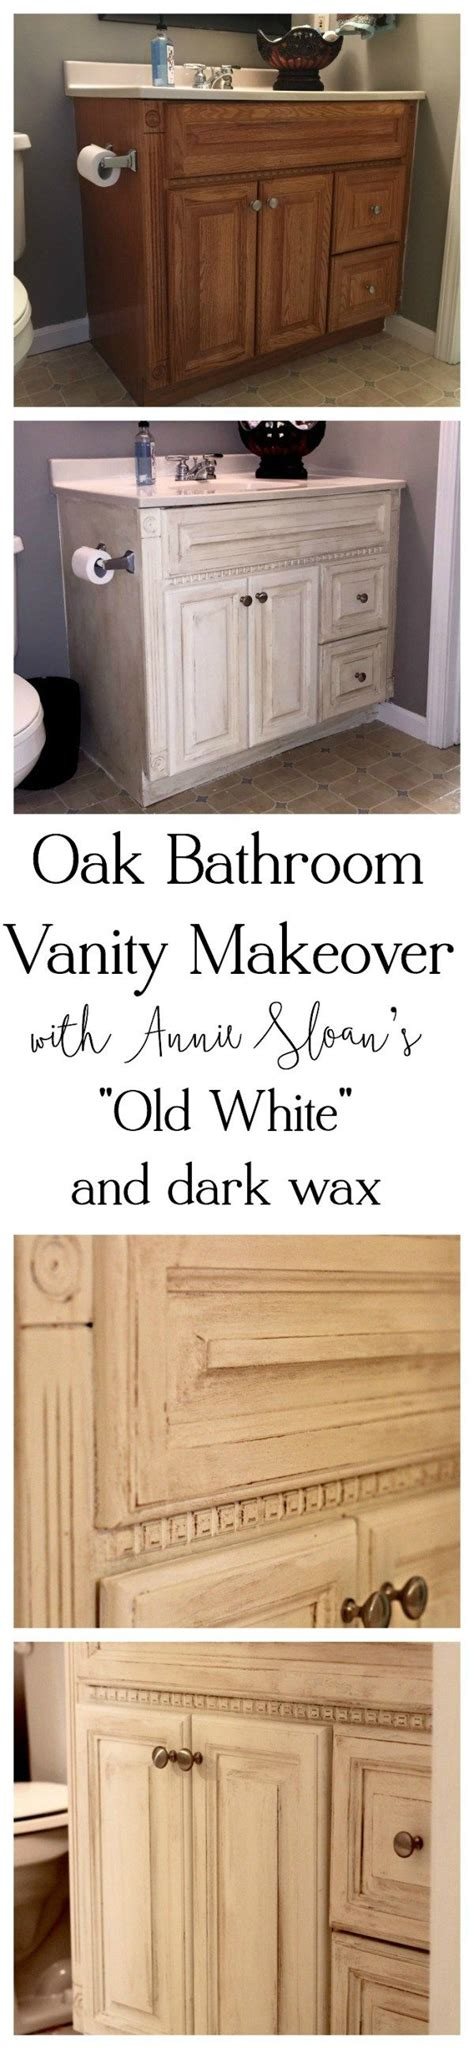 painting oak cabinets white with chalk paint painting oak with annie sloan chalk paint vanities